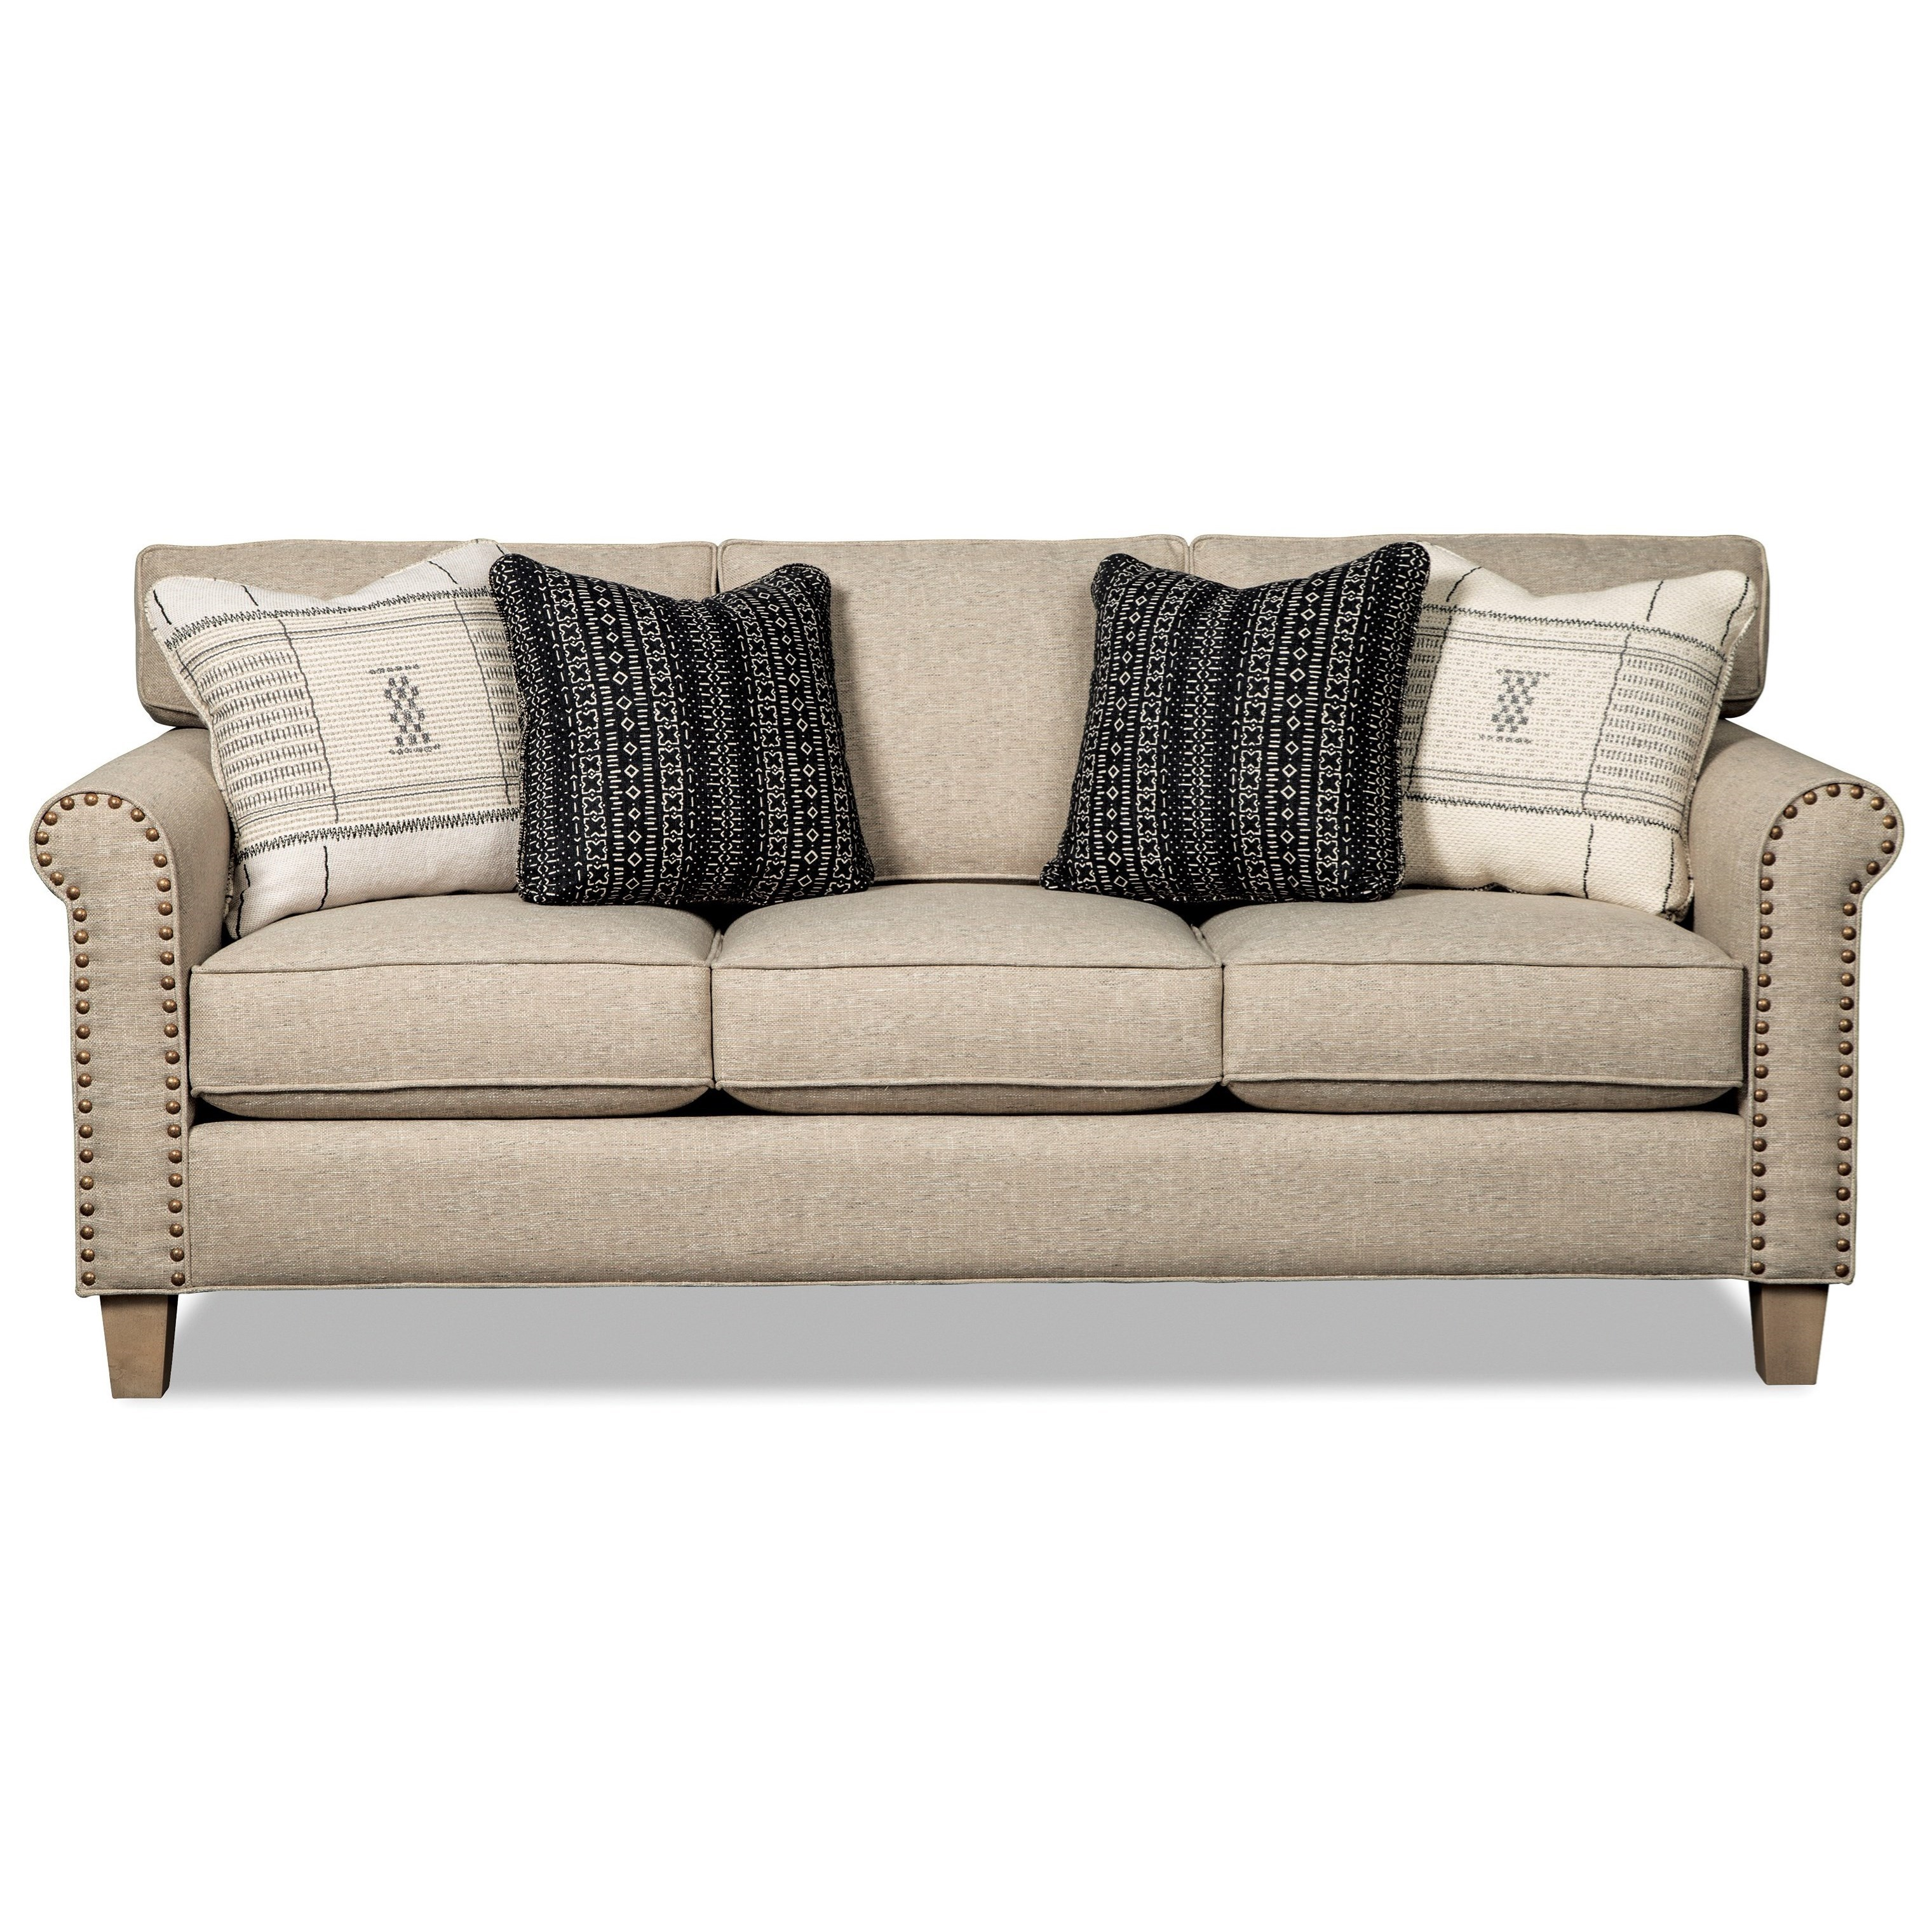 Merveilleux Hickory Craft 778850 Transitional Sofa With Brass Nails